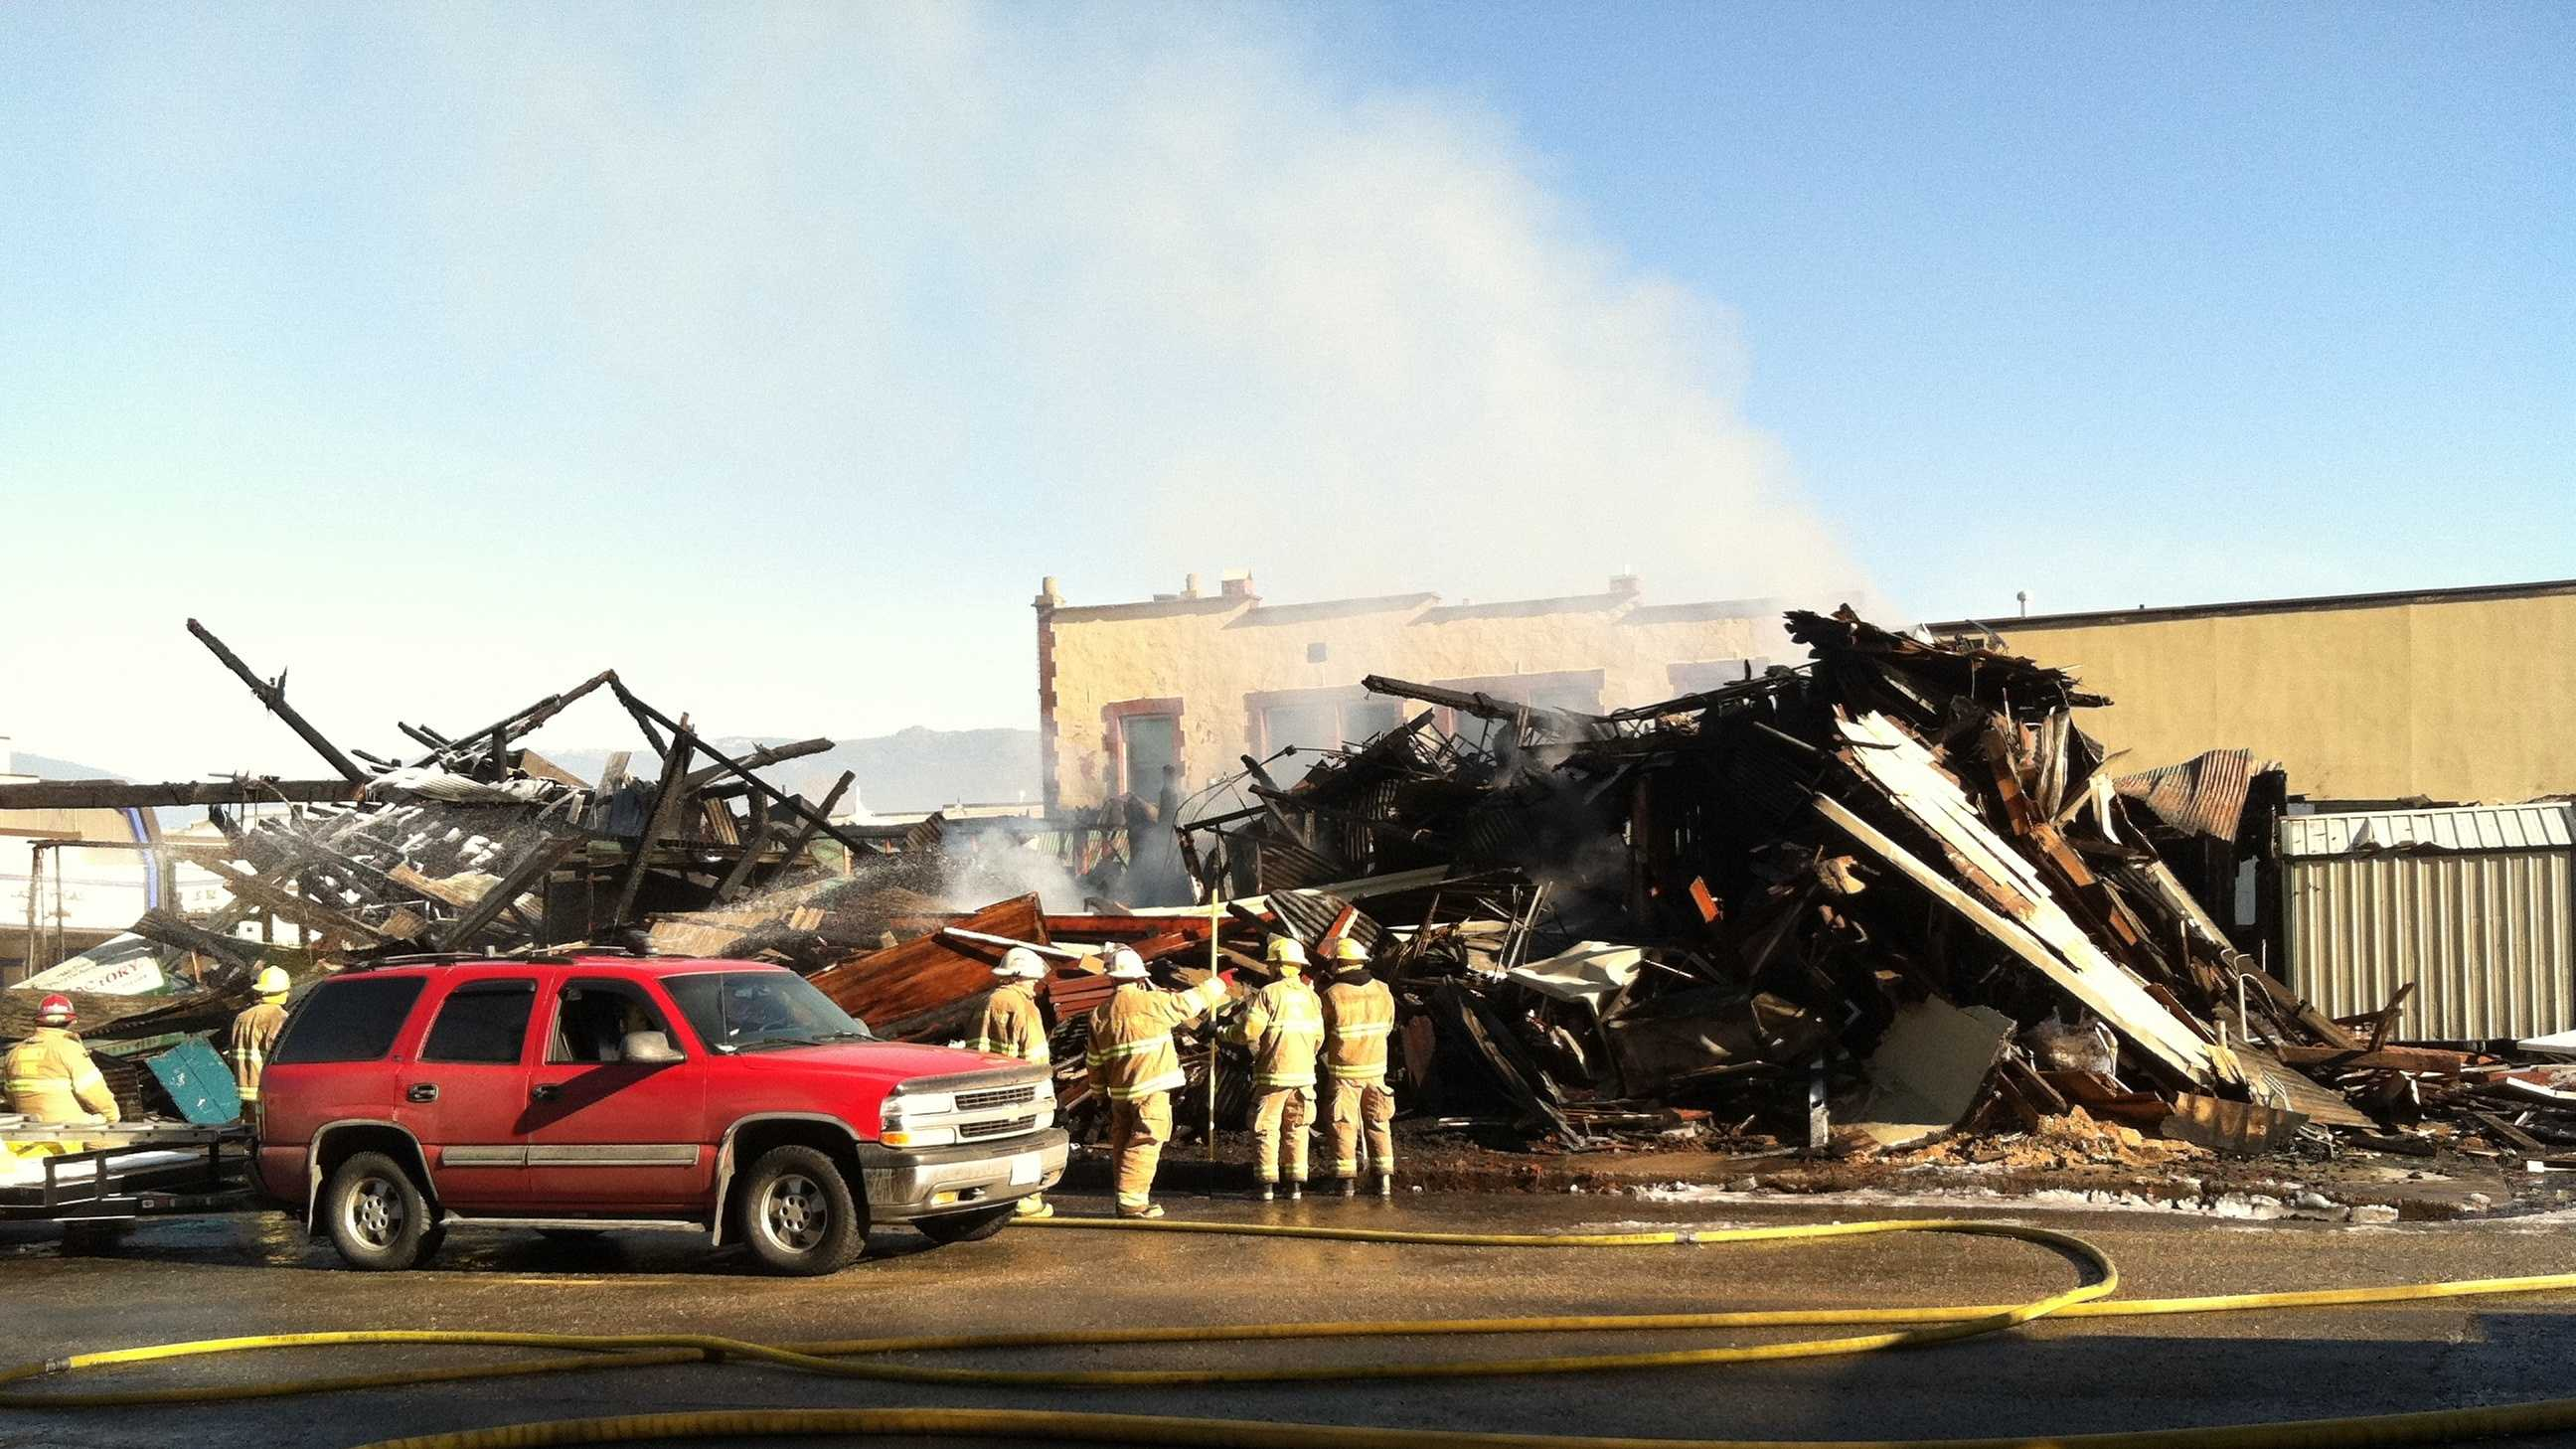 Fire officials said the blaze started around 4 a.m. in the Pizza Factory on Main Street.